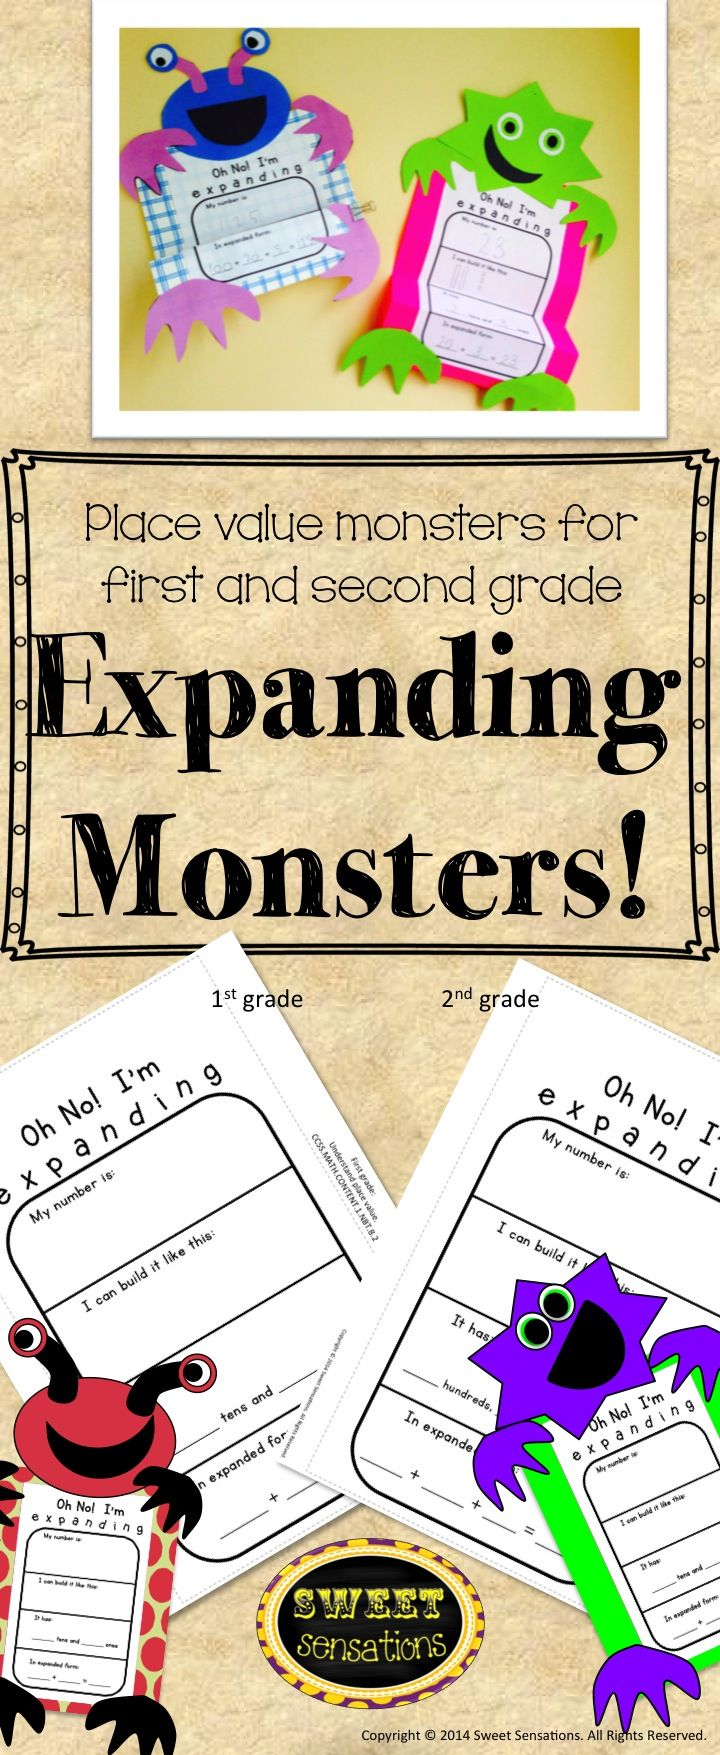 These monsters are the perfect way to demonstrate place value and expanding numbers! Differentiated for two digit numbers for first grade and three digit numbers for second grade. There are two monster head templates with interchangeable eyes and mouths so that your monsters can be as unique as your students. Display on a bulletin board - would look fantastic for Halloween!